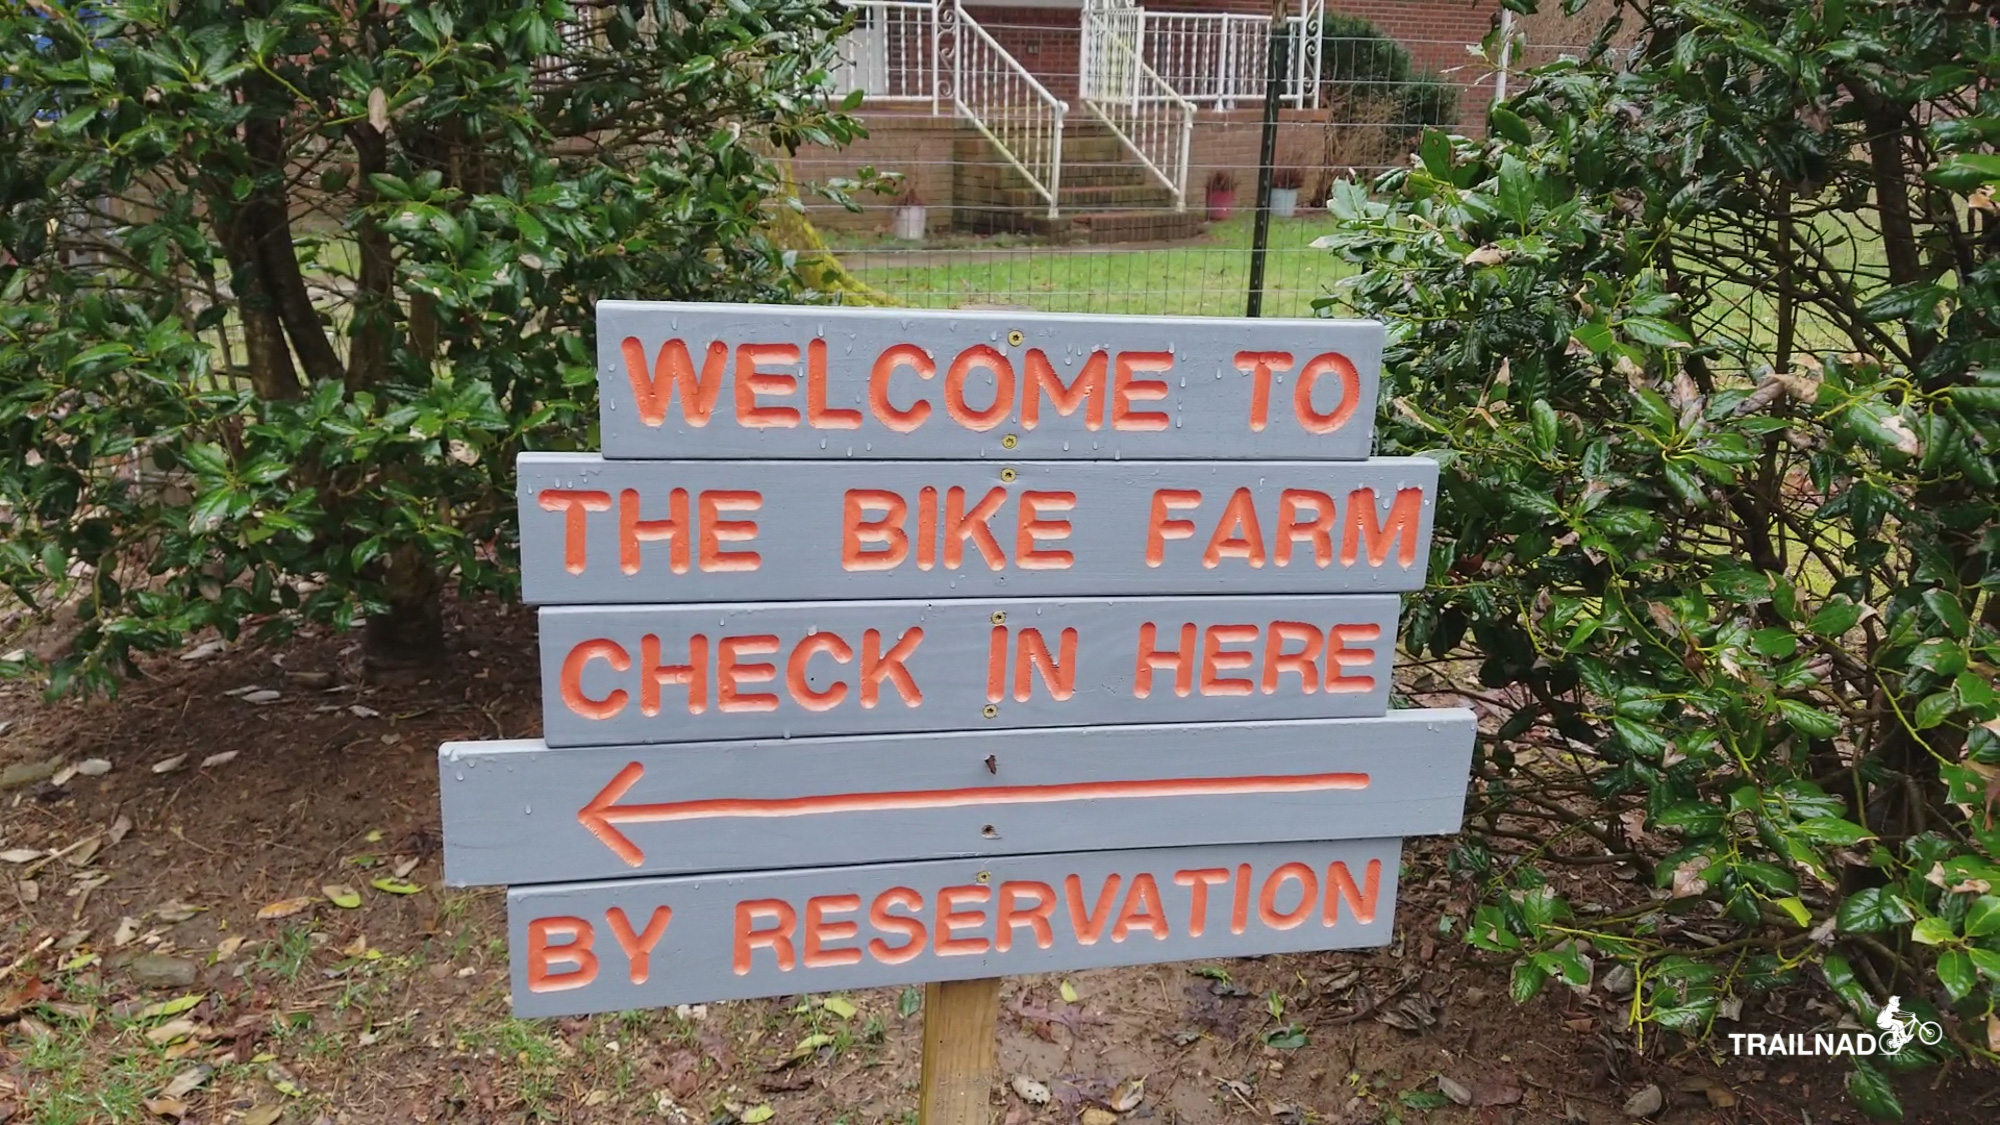 The Bike Farm Check In